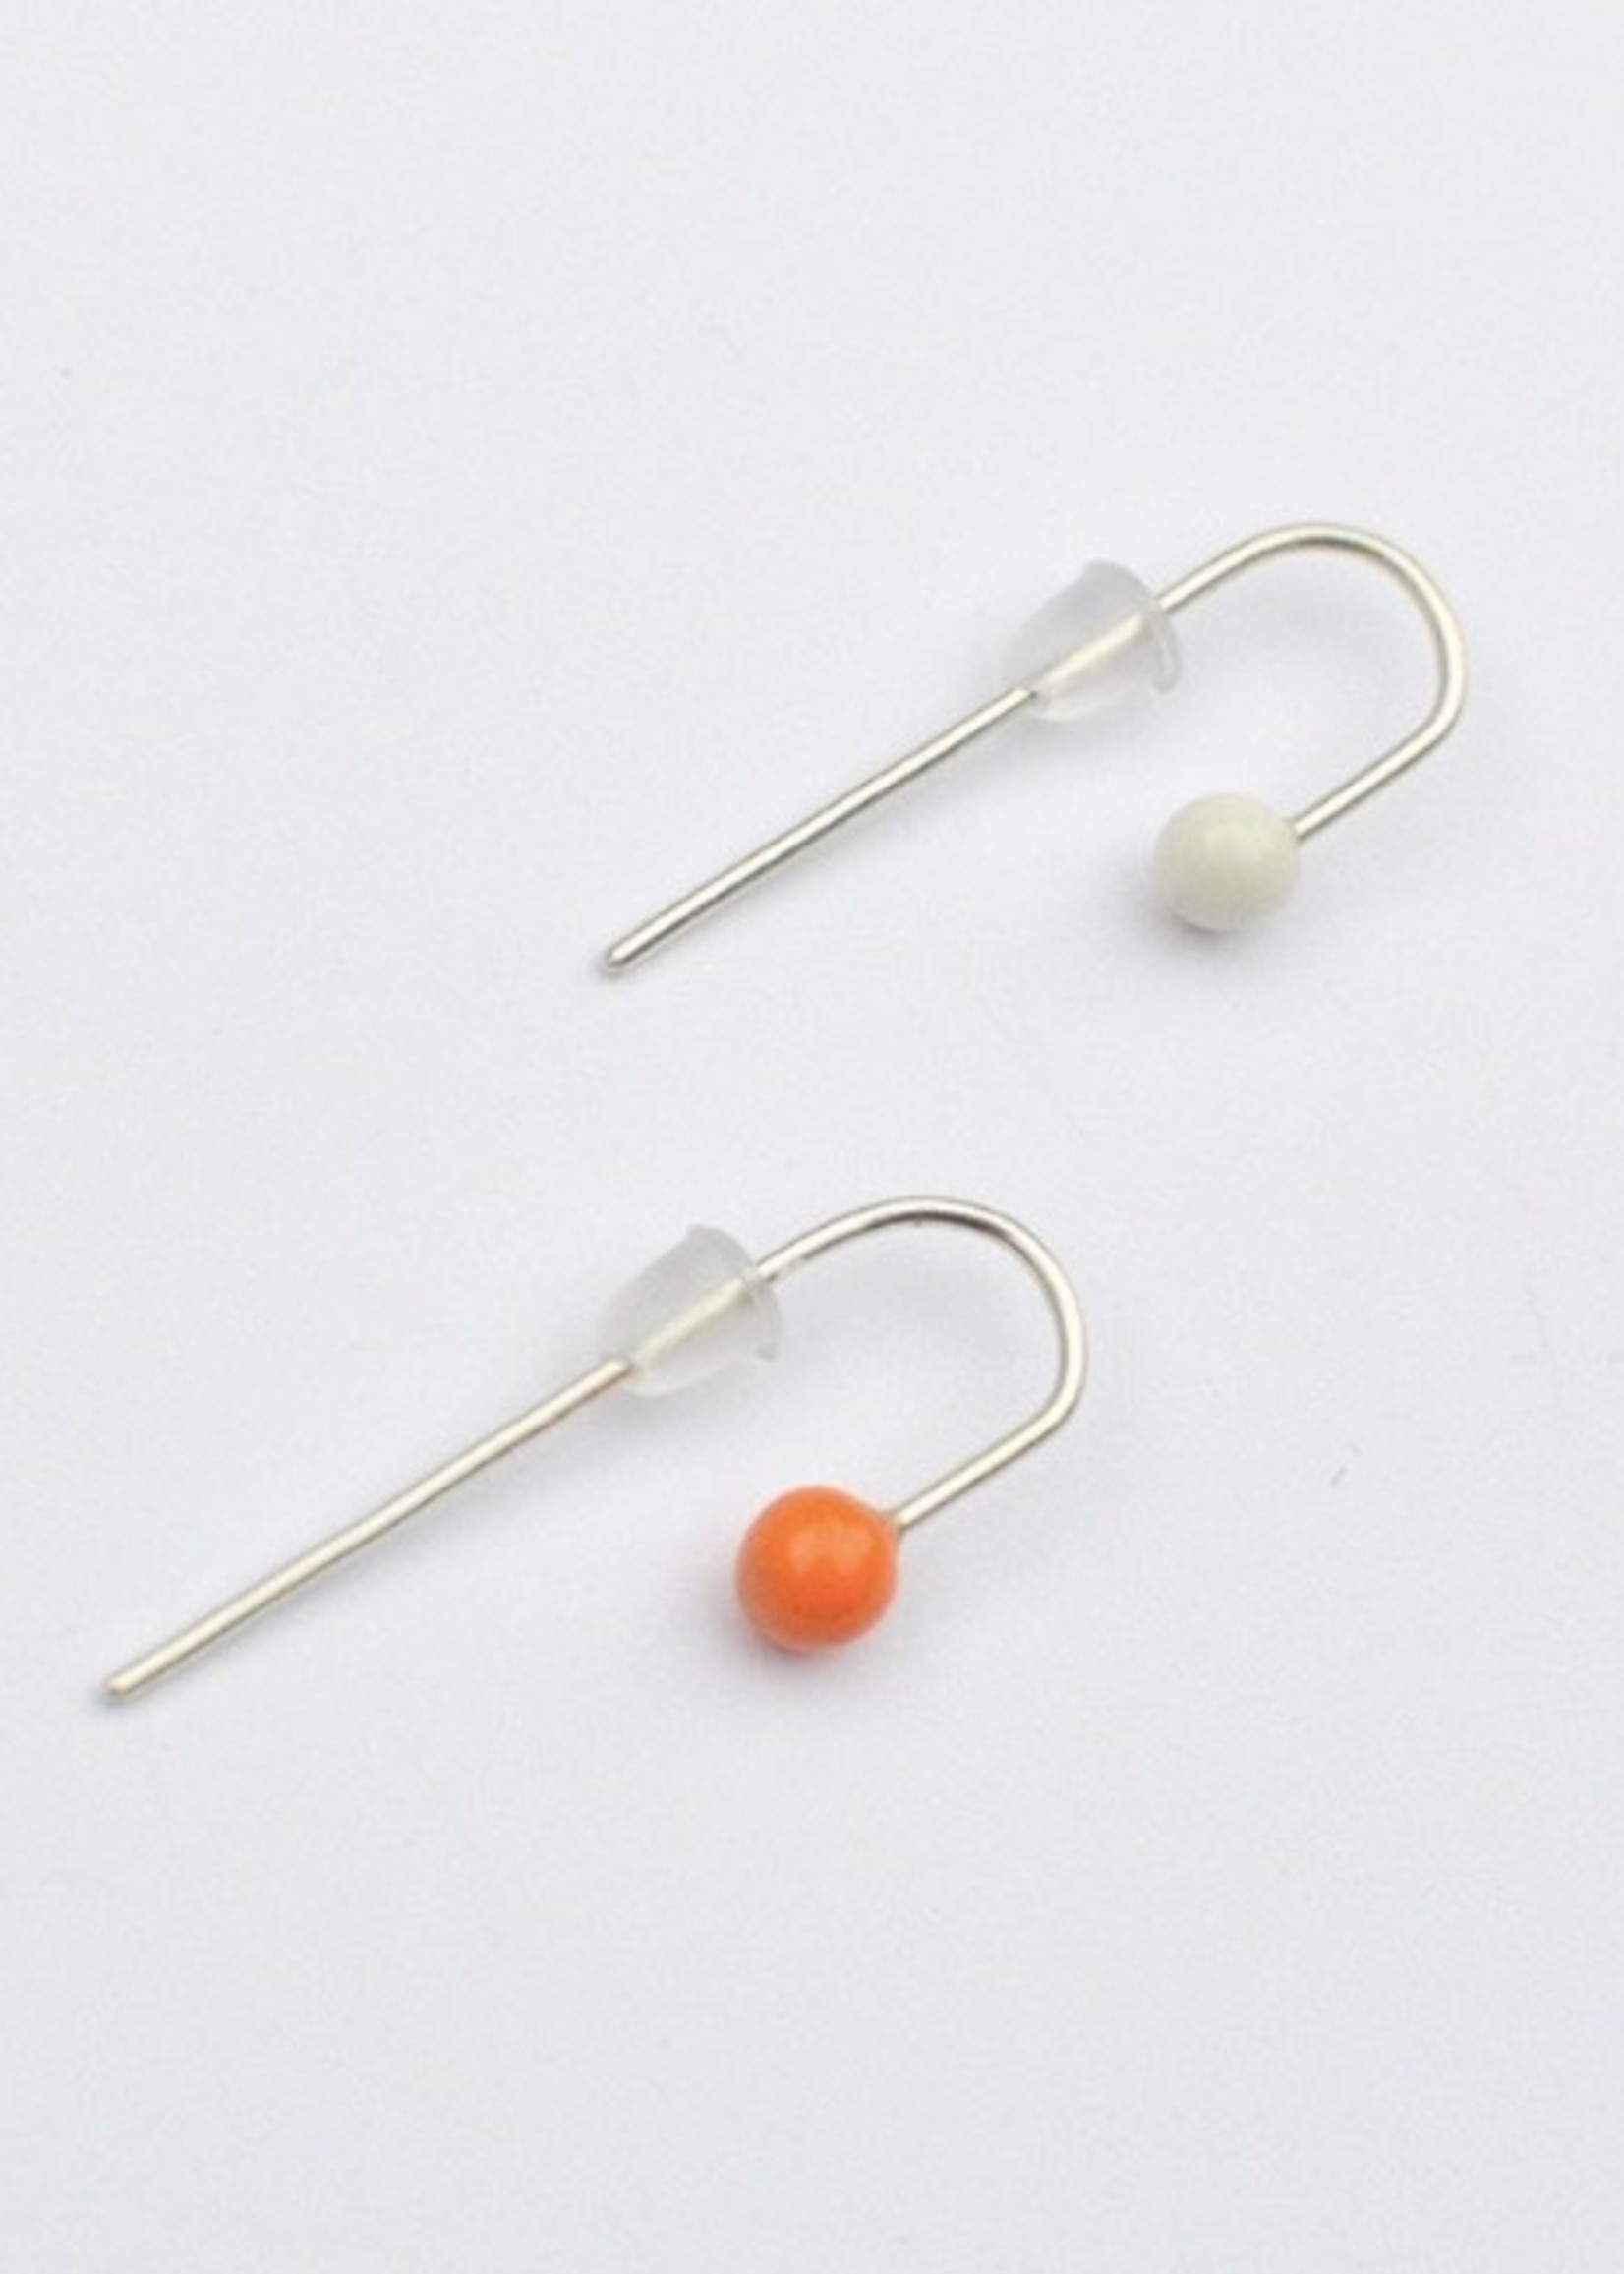 Monochromatiques Twisted Pins Earrings by Monochromatiques